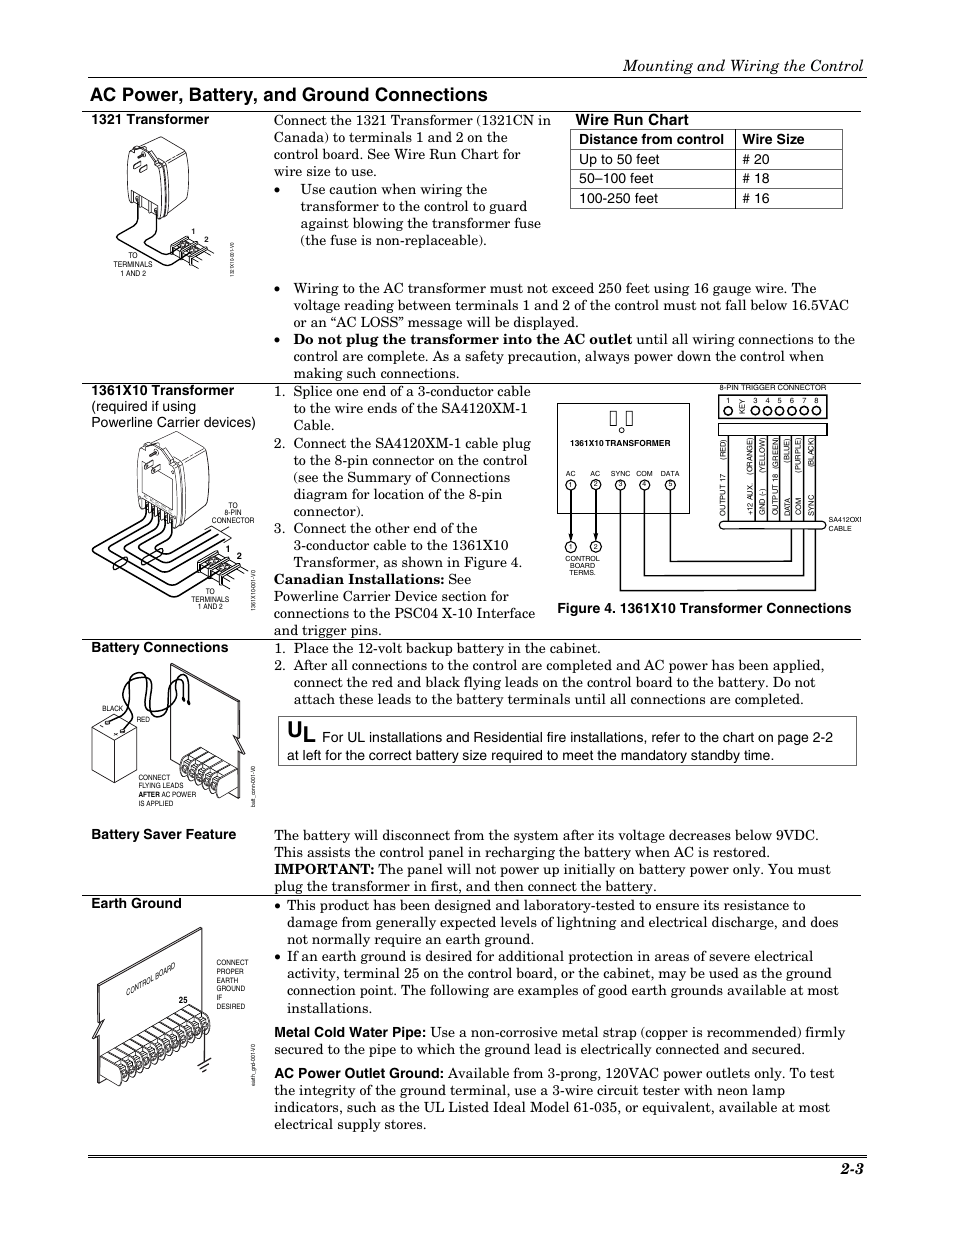 hight resolution of ac power battery and ground connections wire run chart mounting and wiring the control 2 3 honeywell vista 20p user manual page 9 80